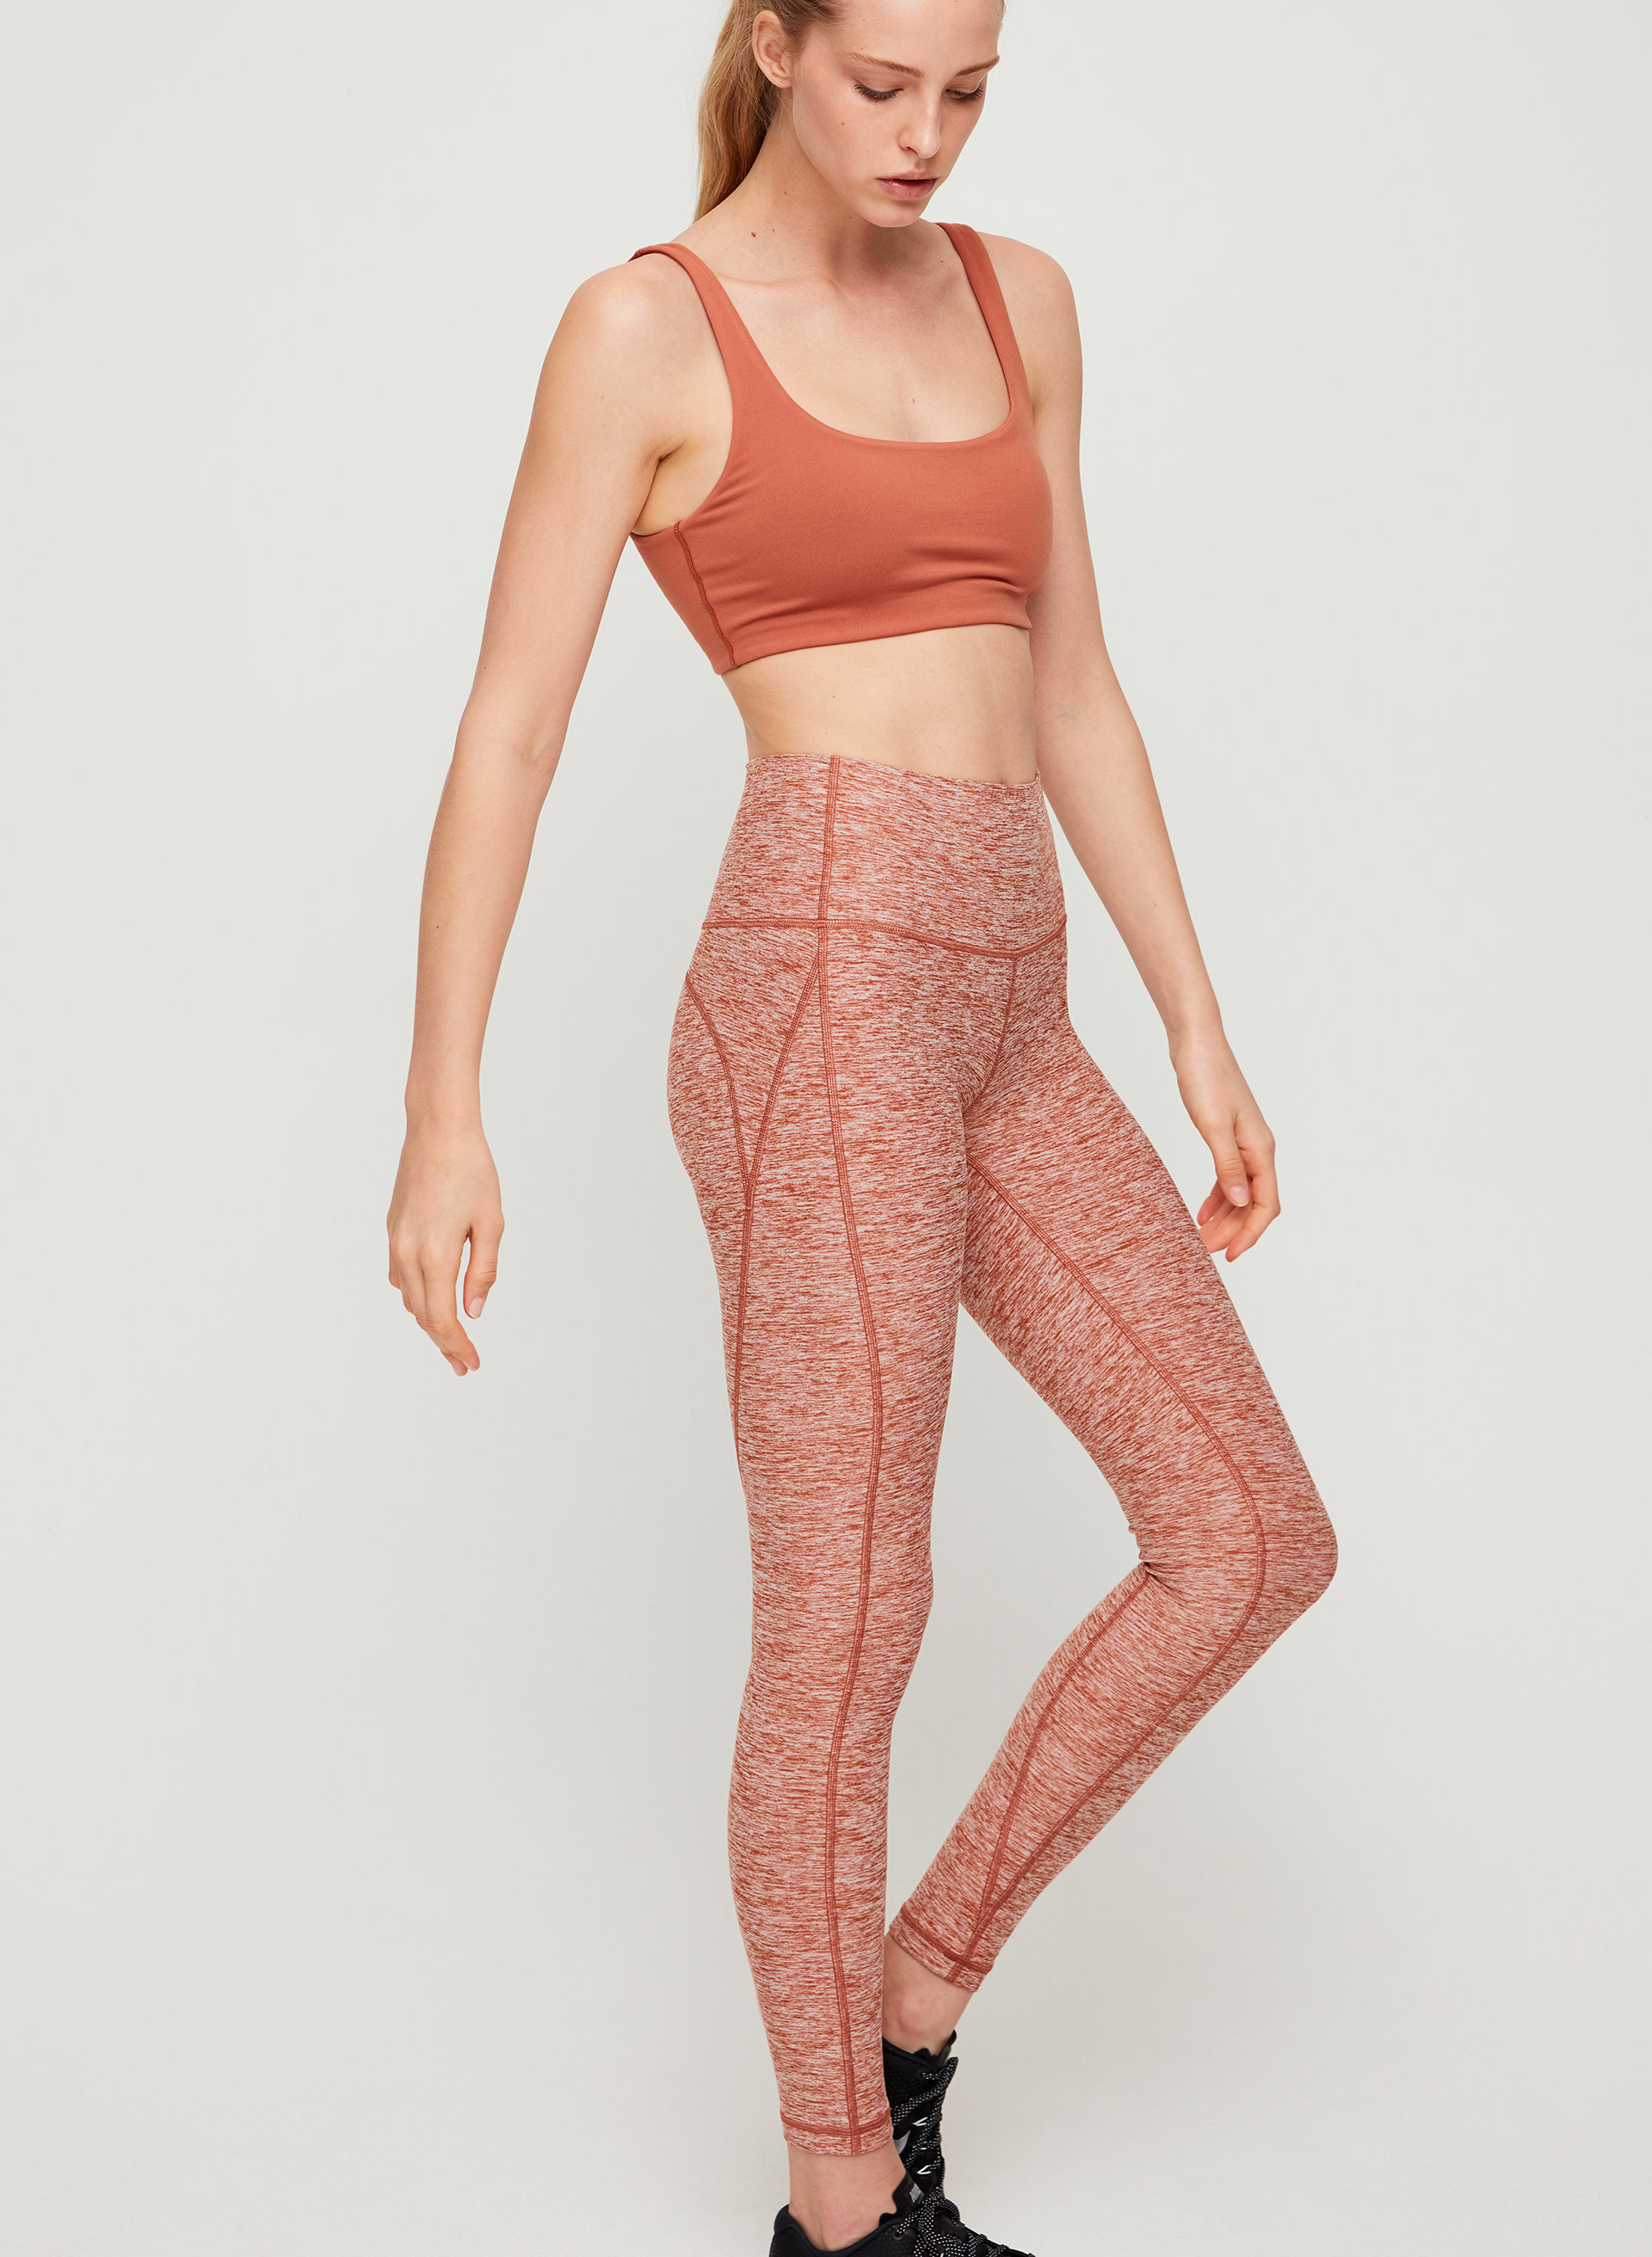 2c253a1959df3 relay team pant High-waisted, workout legging